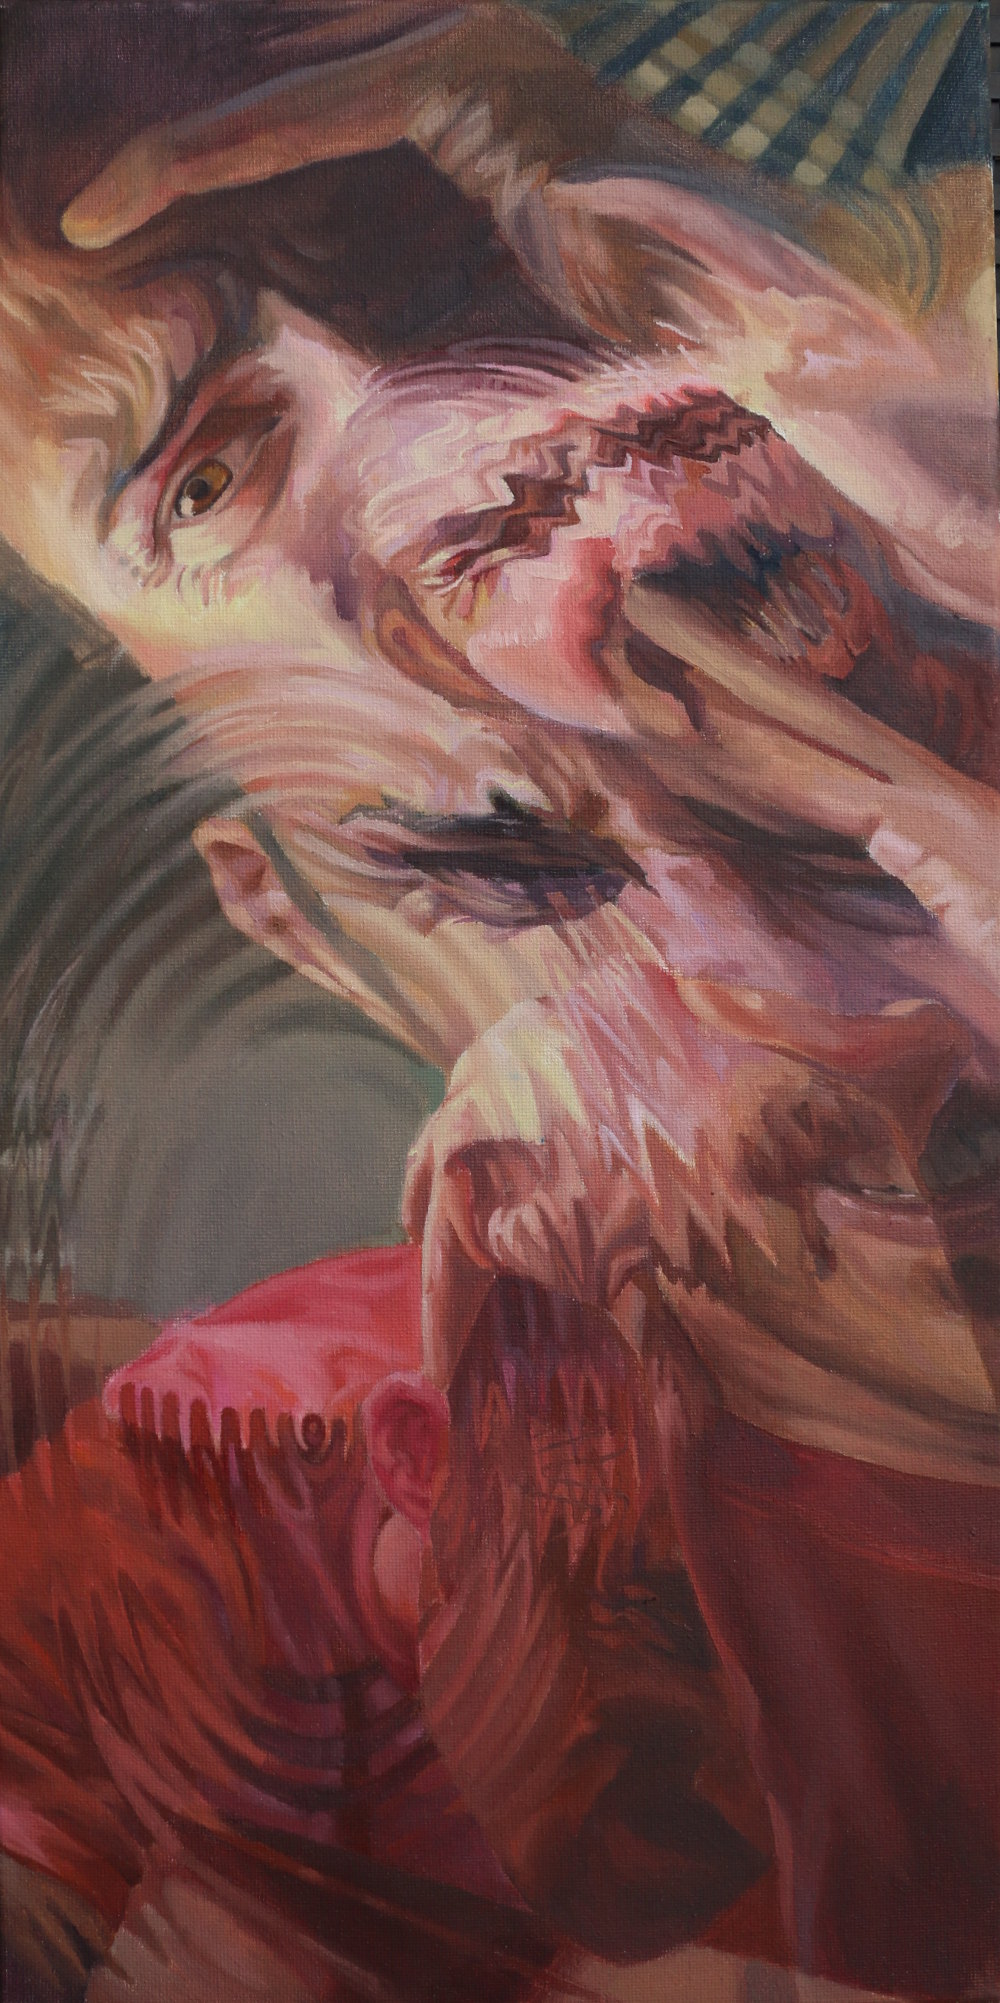 Migraine Madness 2 Surreal Oil Painting